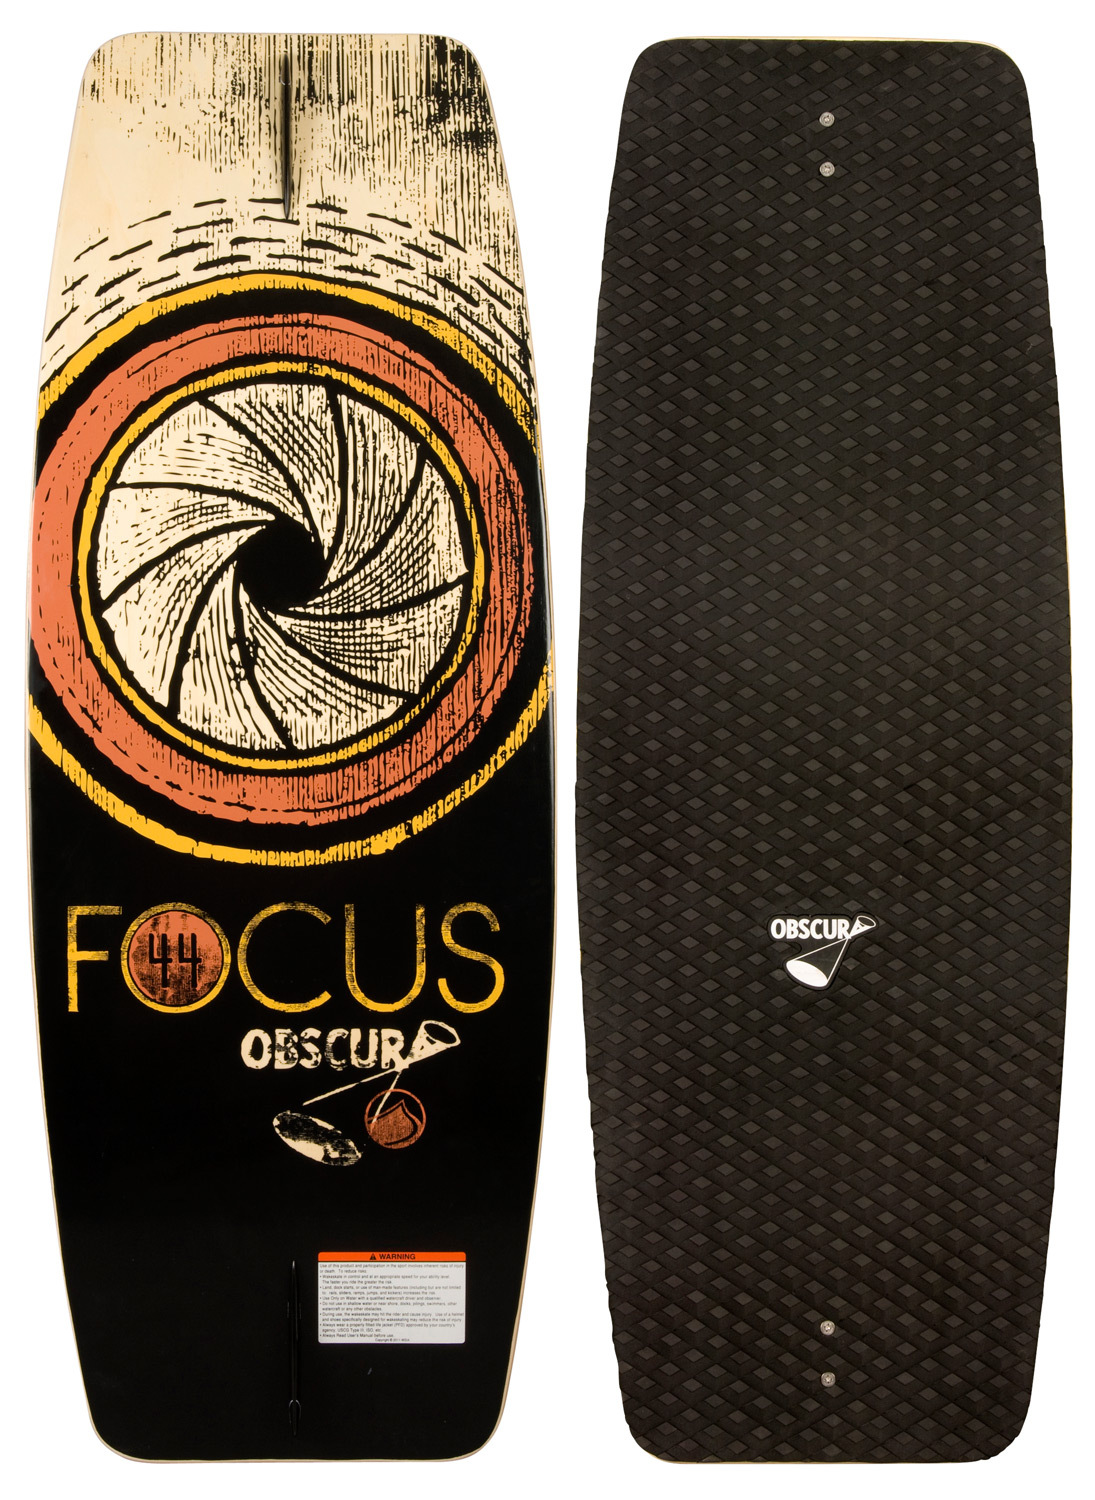 Wake The brand new FOCUS is the perfect wake skate to learn and progress on. This value priced skate features a newly designed, super forgiving and stable outline, and a new EVA Deck pad to help you learn the basics and guide you along. If you are new to wake skating or just looking to get your first deck, there is no better board to start your skate journey on than the FOCUS!Key Features of the Liquid Force Focus Wakeskate 42in:  Updated for 2014!  New and improved EVA Deck  Progressive 3-Stage Rocker  Single concave  Wood Construction  Newly updated Symmetrical  Outline  Constant Rail Edge - $79.95